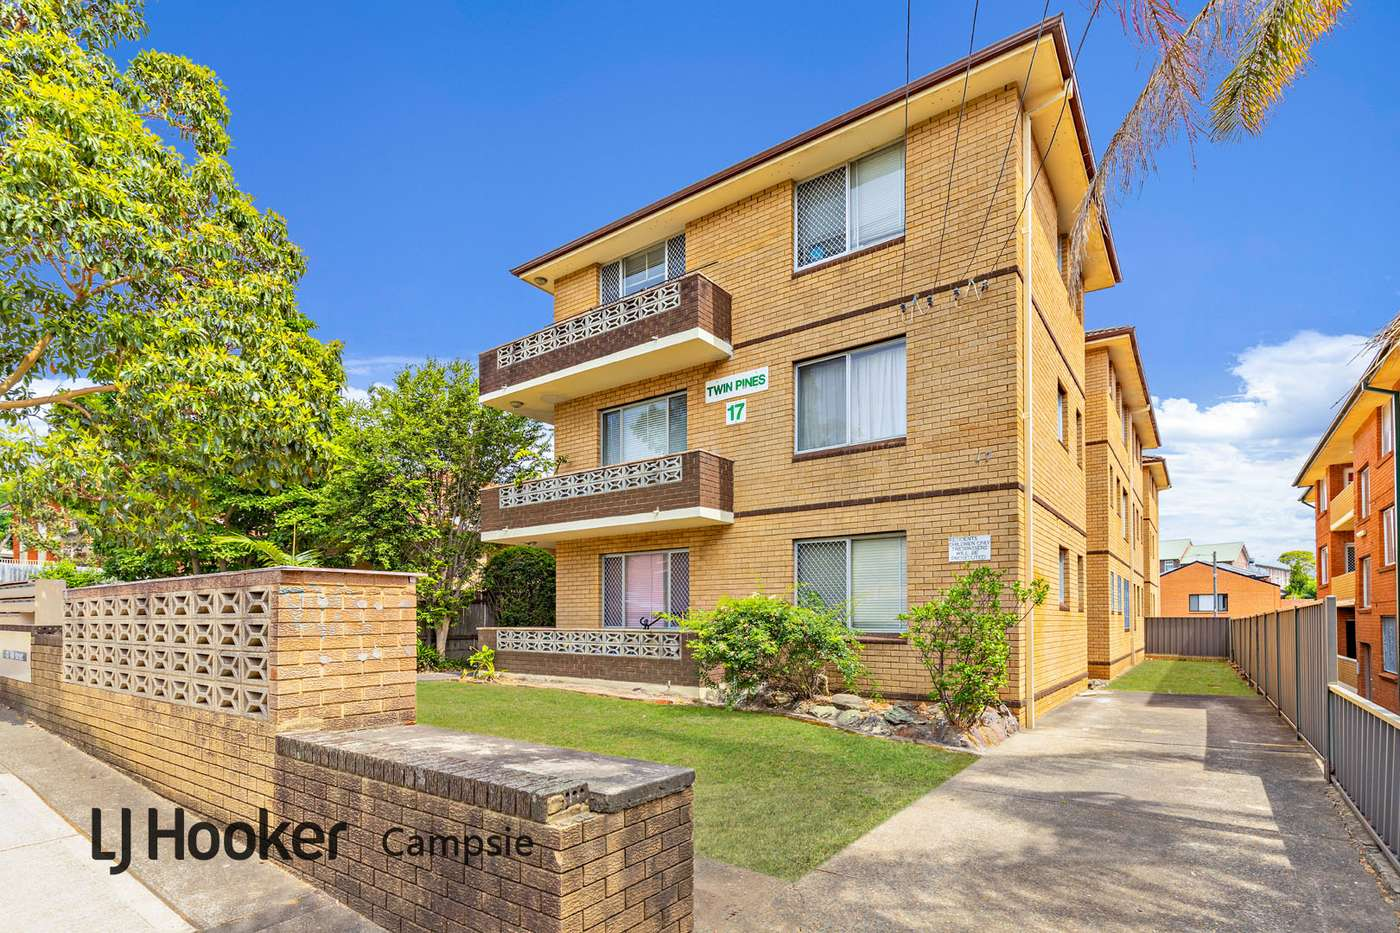 Main view of Homely apartment listing, 7/17 Hill Street, Campsie, NSW 2194